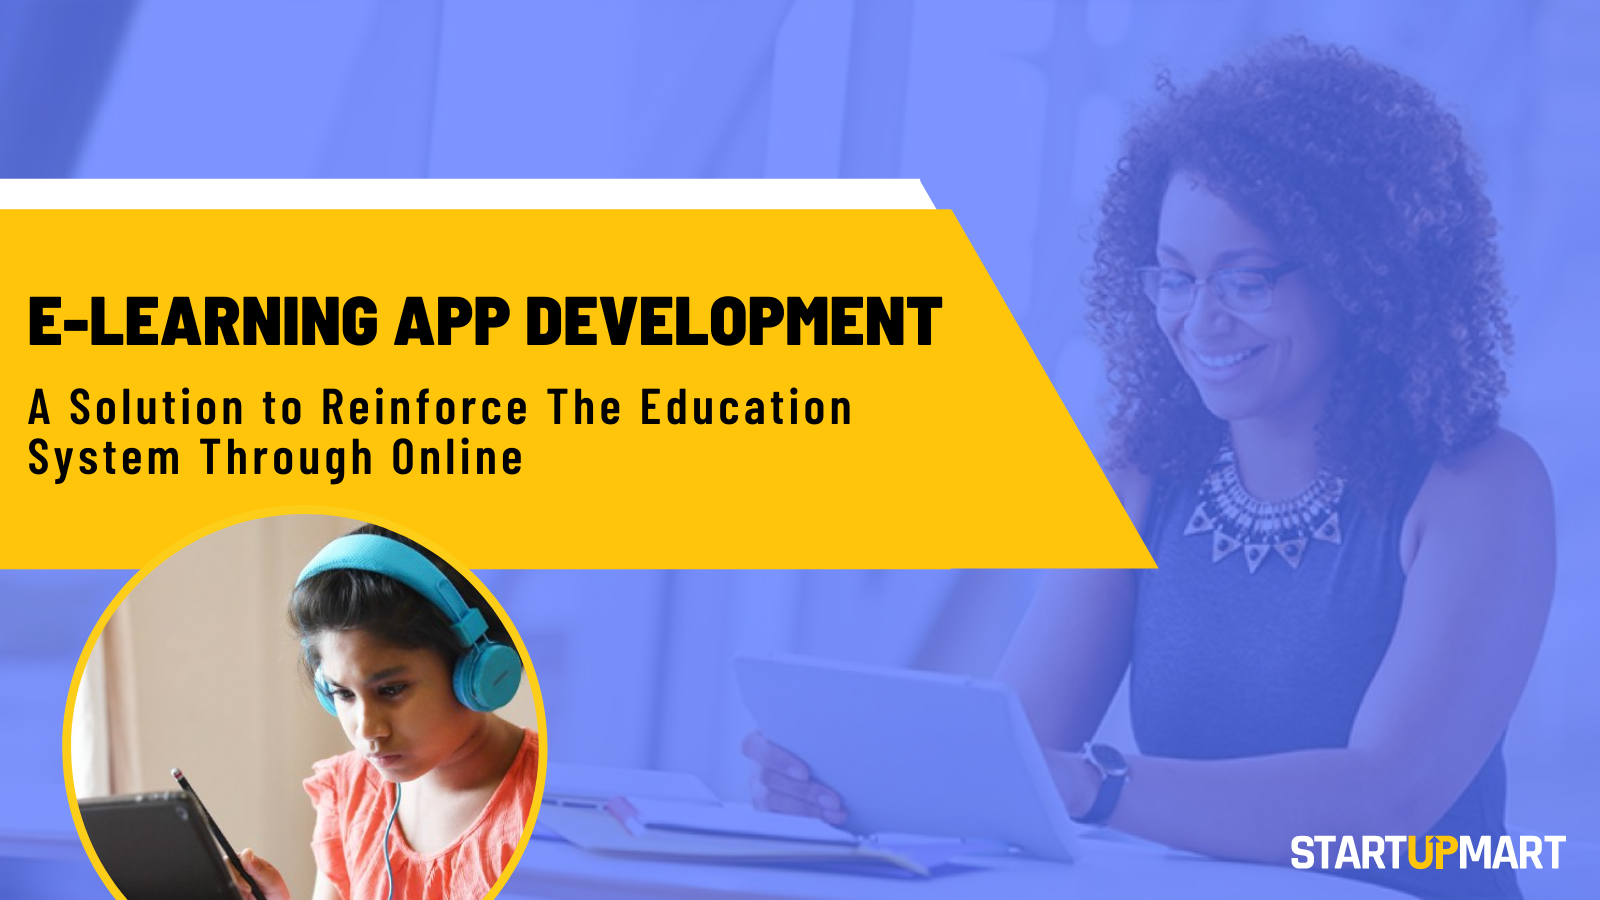 E-Learning App Development - A Solution to Reinforce The Education System Through Online